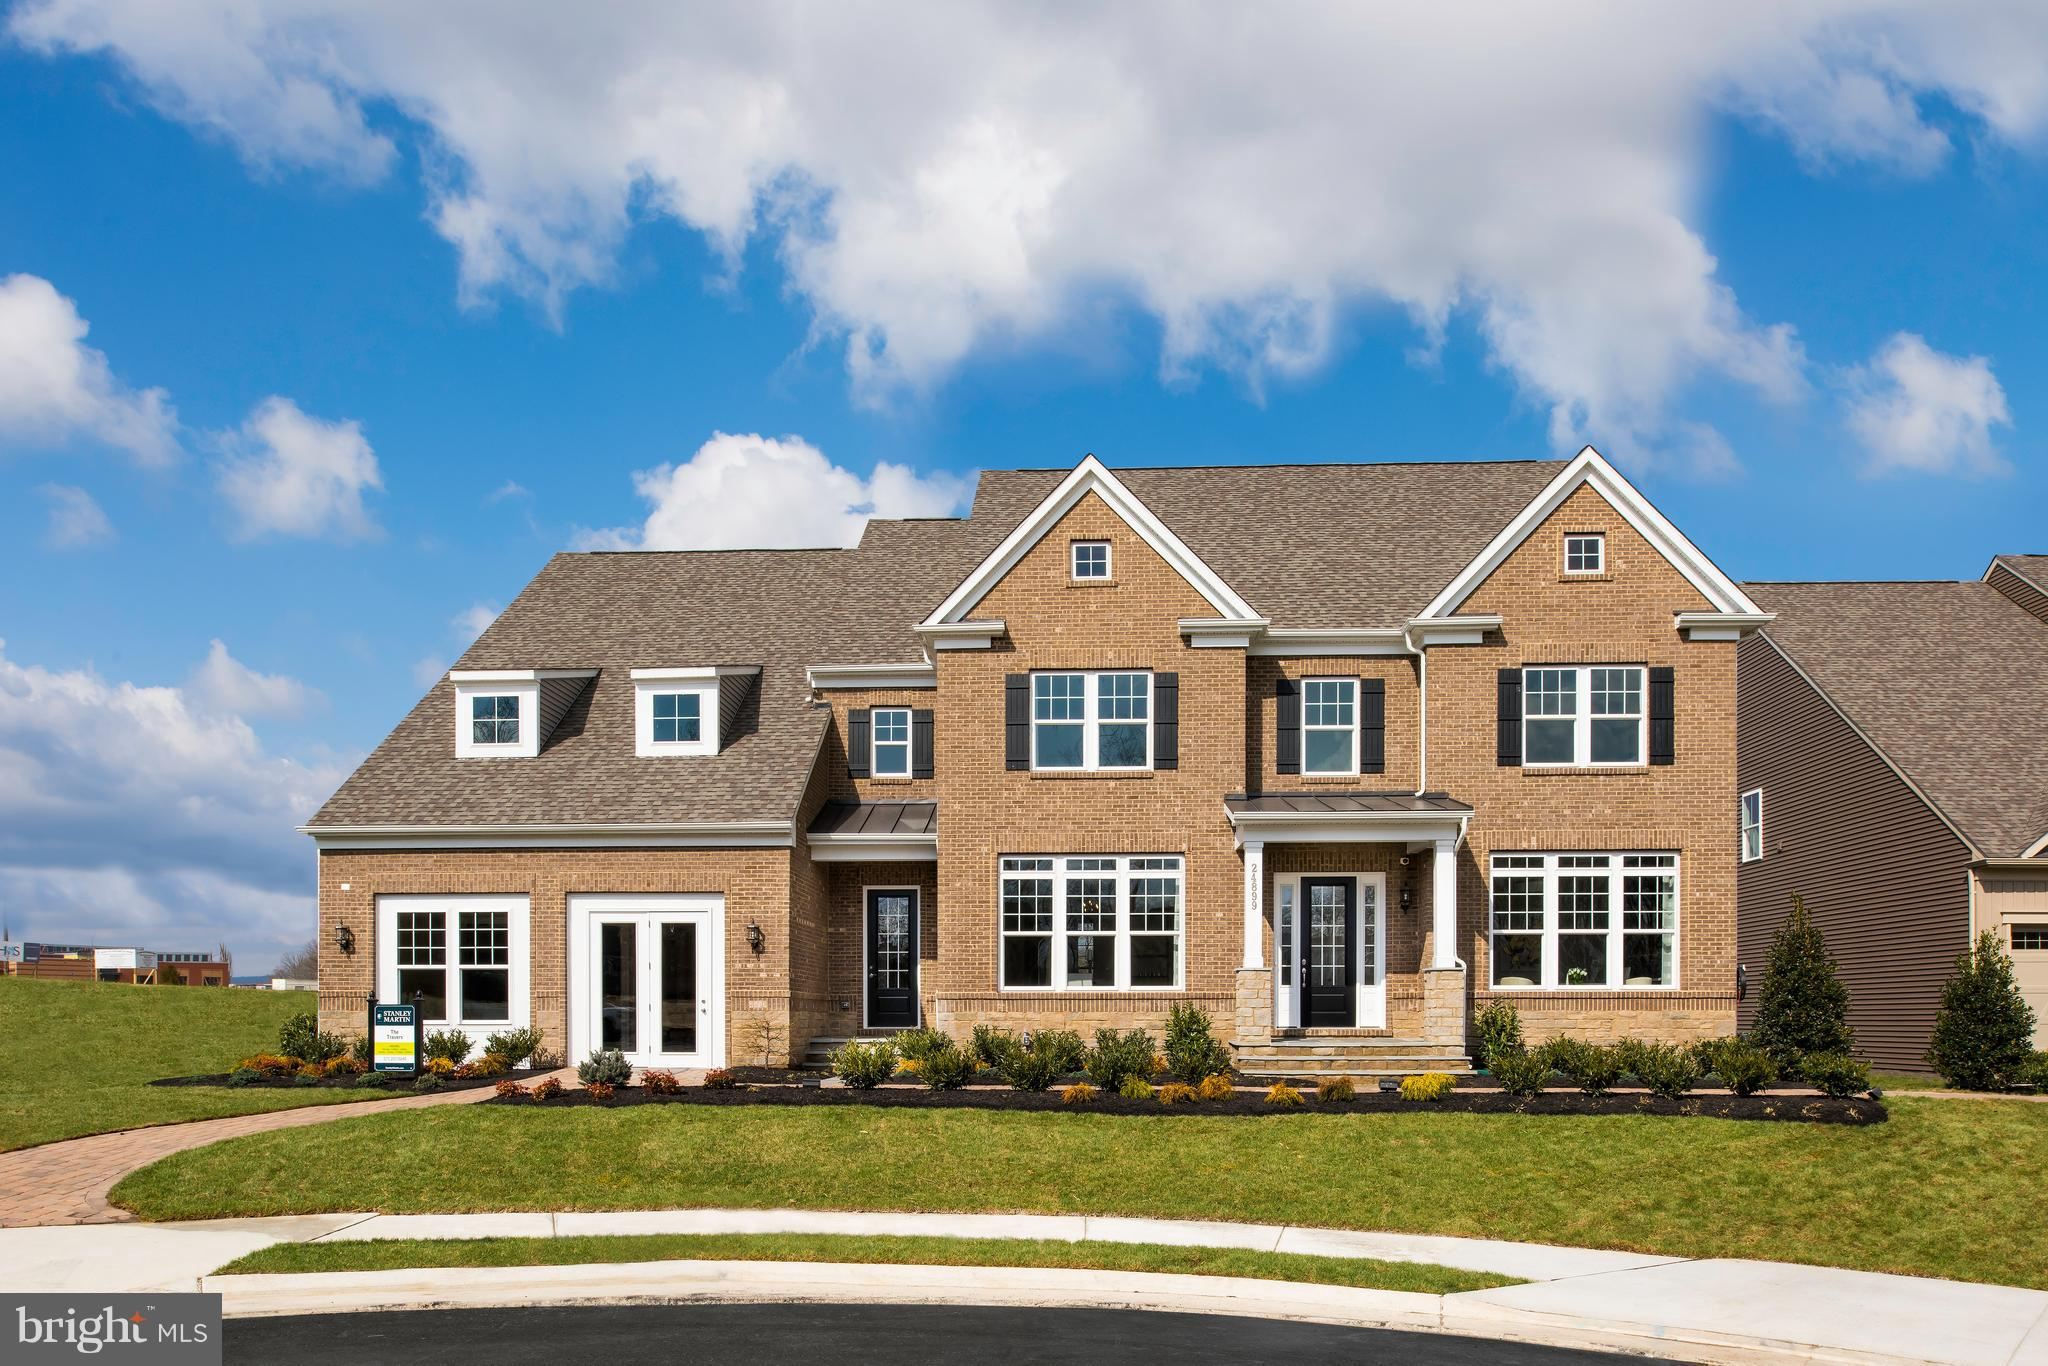 0 LORD SUDLEY DRIVE, CENTREVILLE, VA 20120